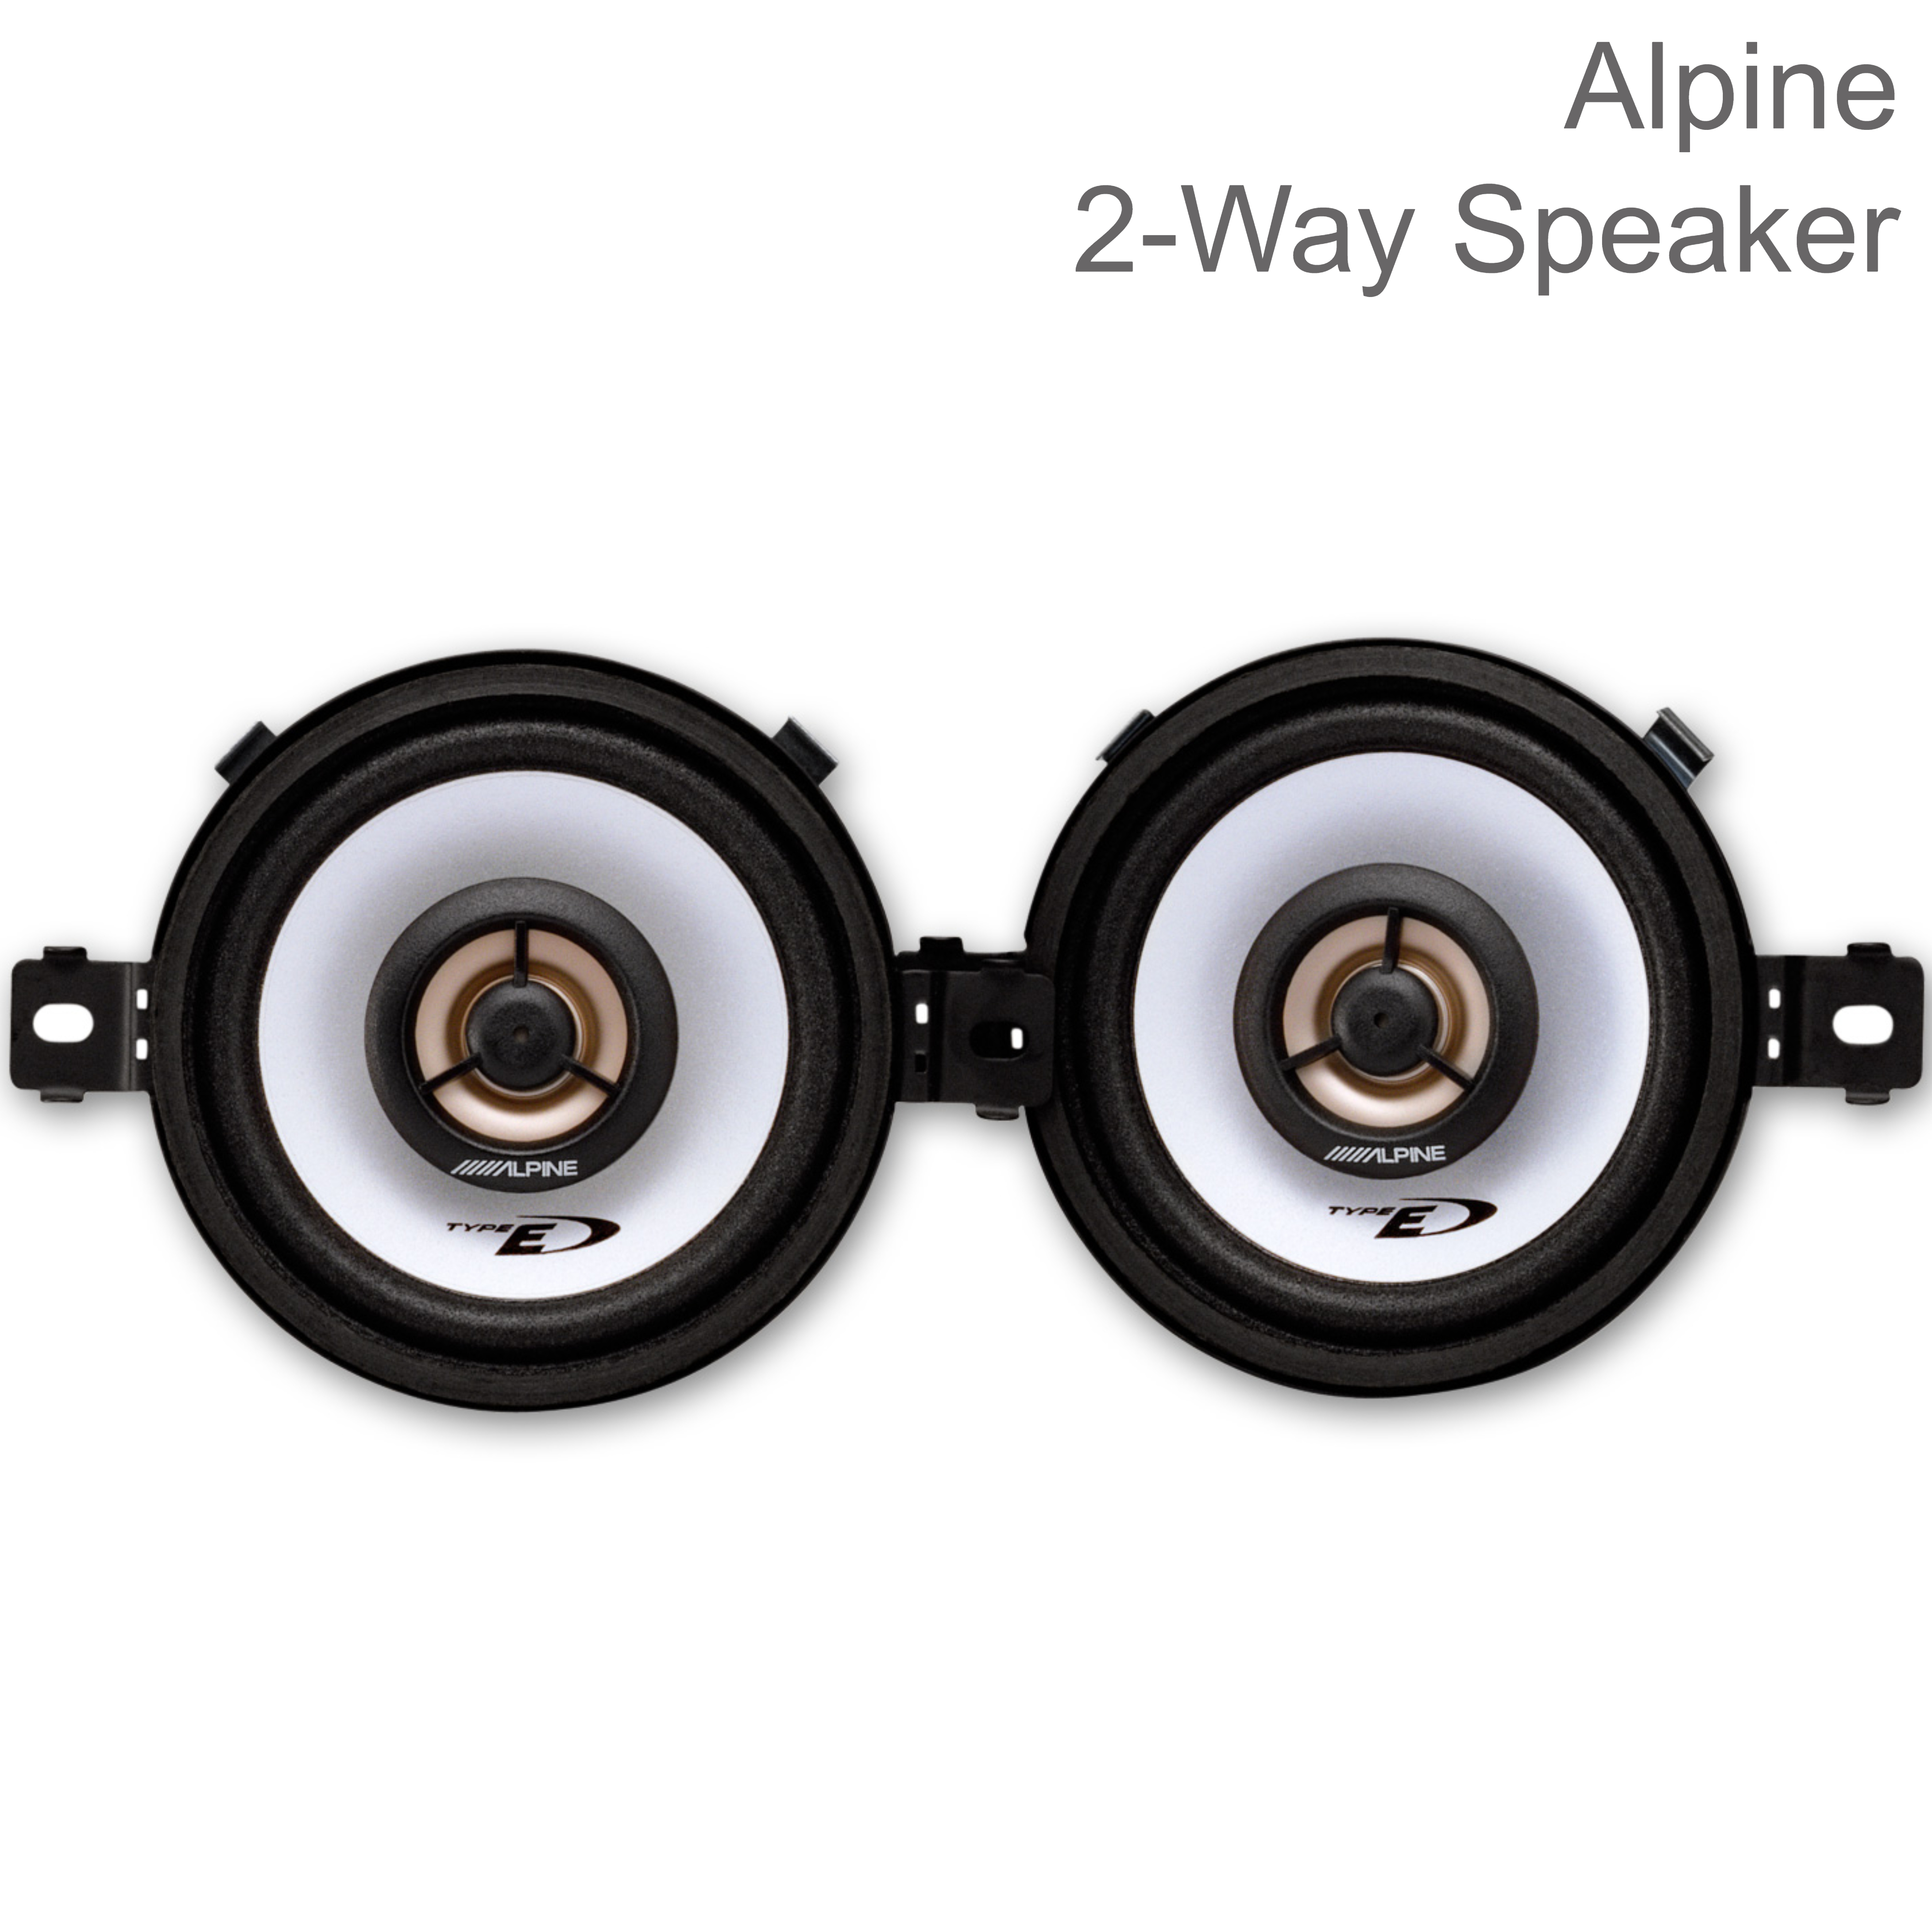 Alpine Coaxial 2-Way Car-Van Audio Speakers | 3.5''-8.6cm | 150W Peak Power | SXE 0825